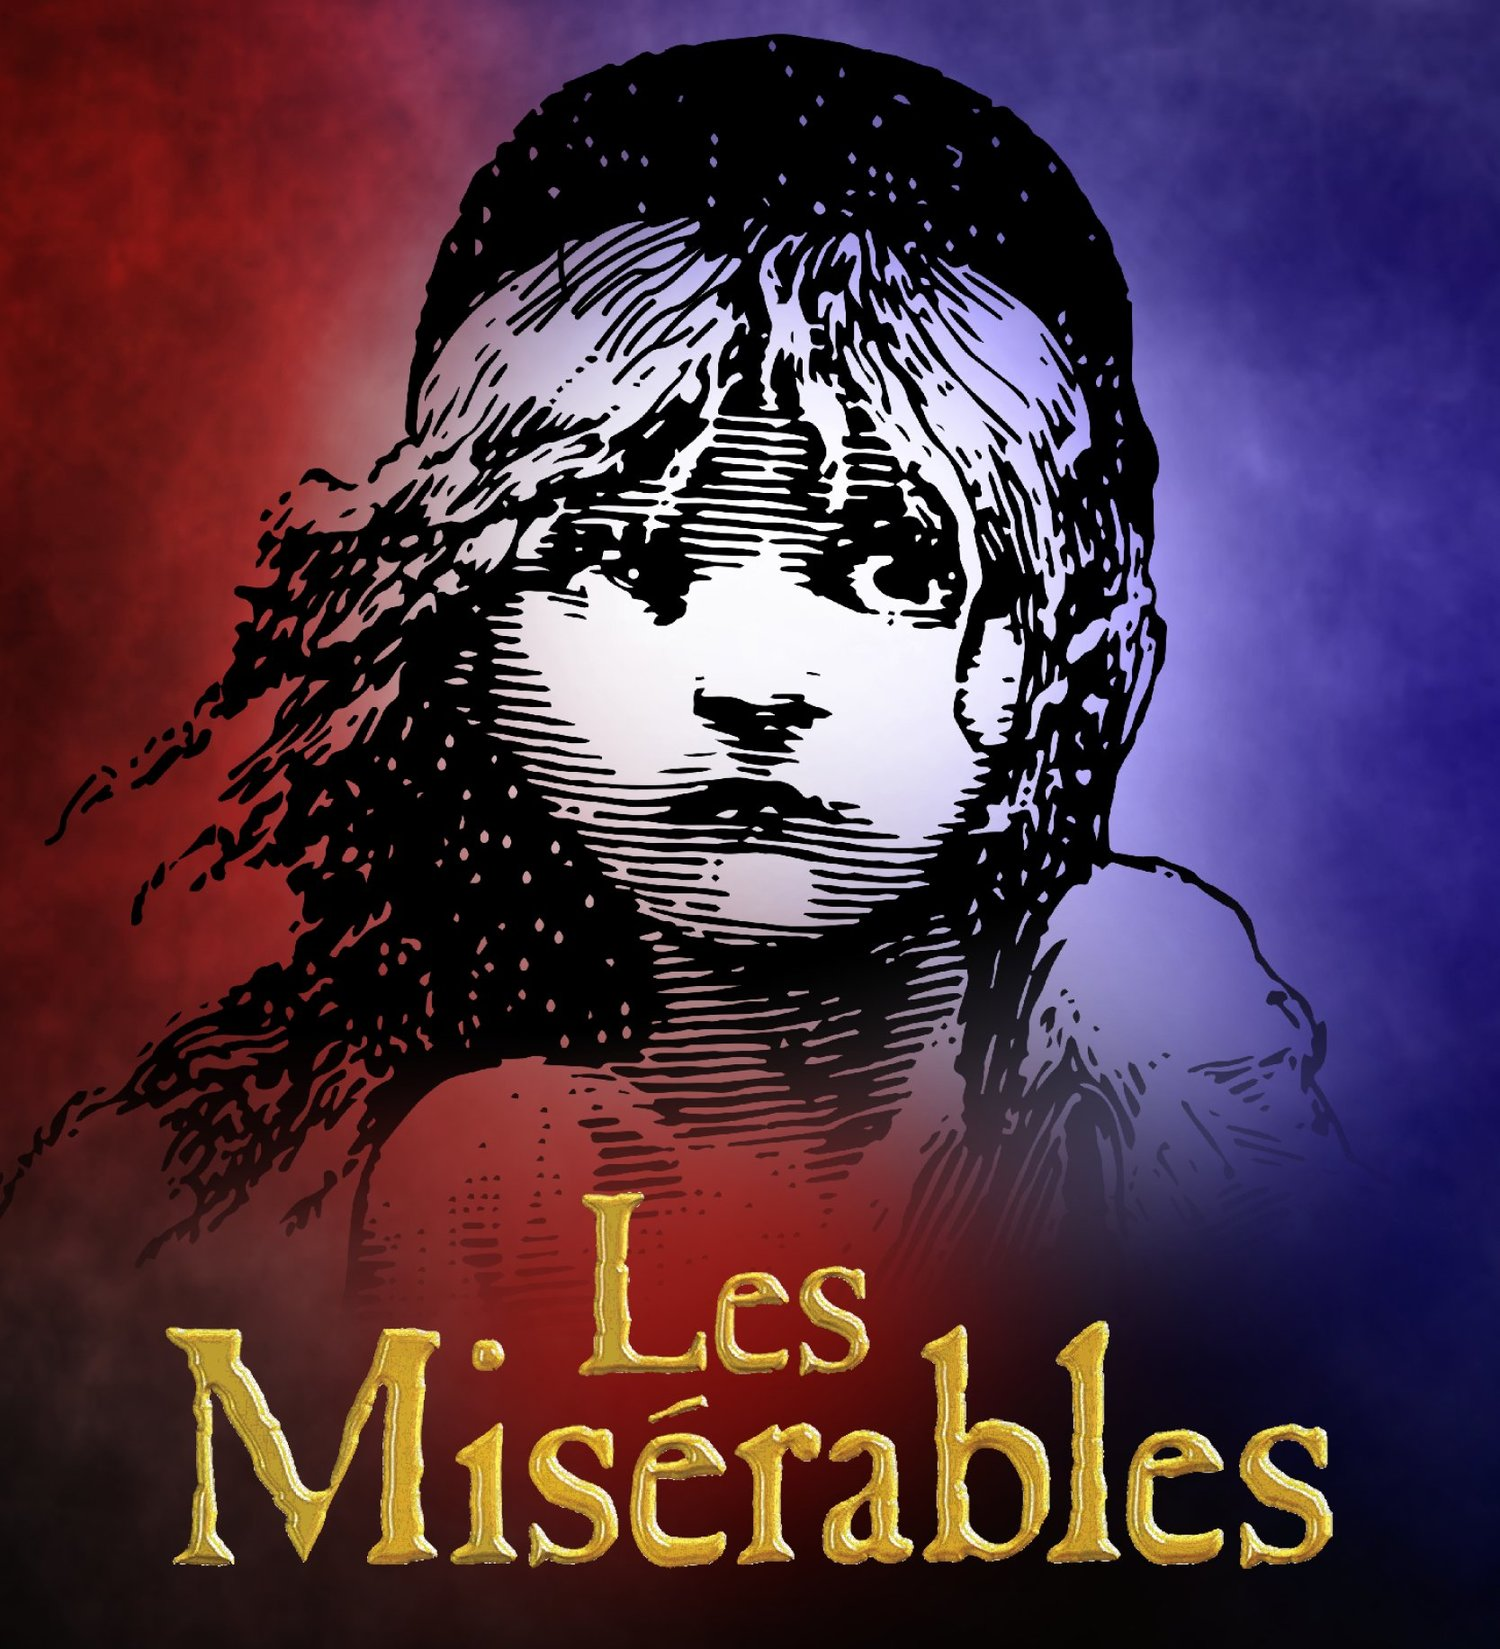 BWW Review: LES MISERABLES at the Hobby Center for Performing Arts is a Dream (I Dreamed)